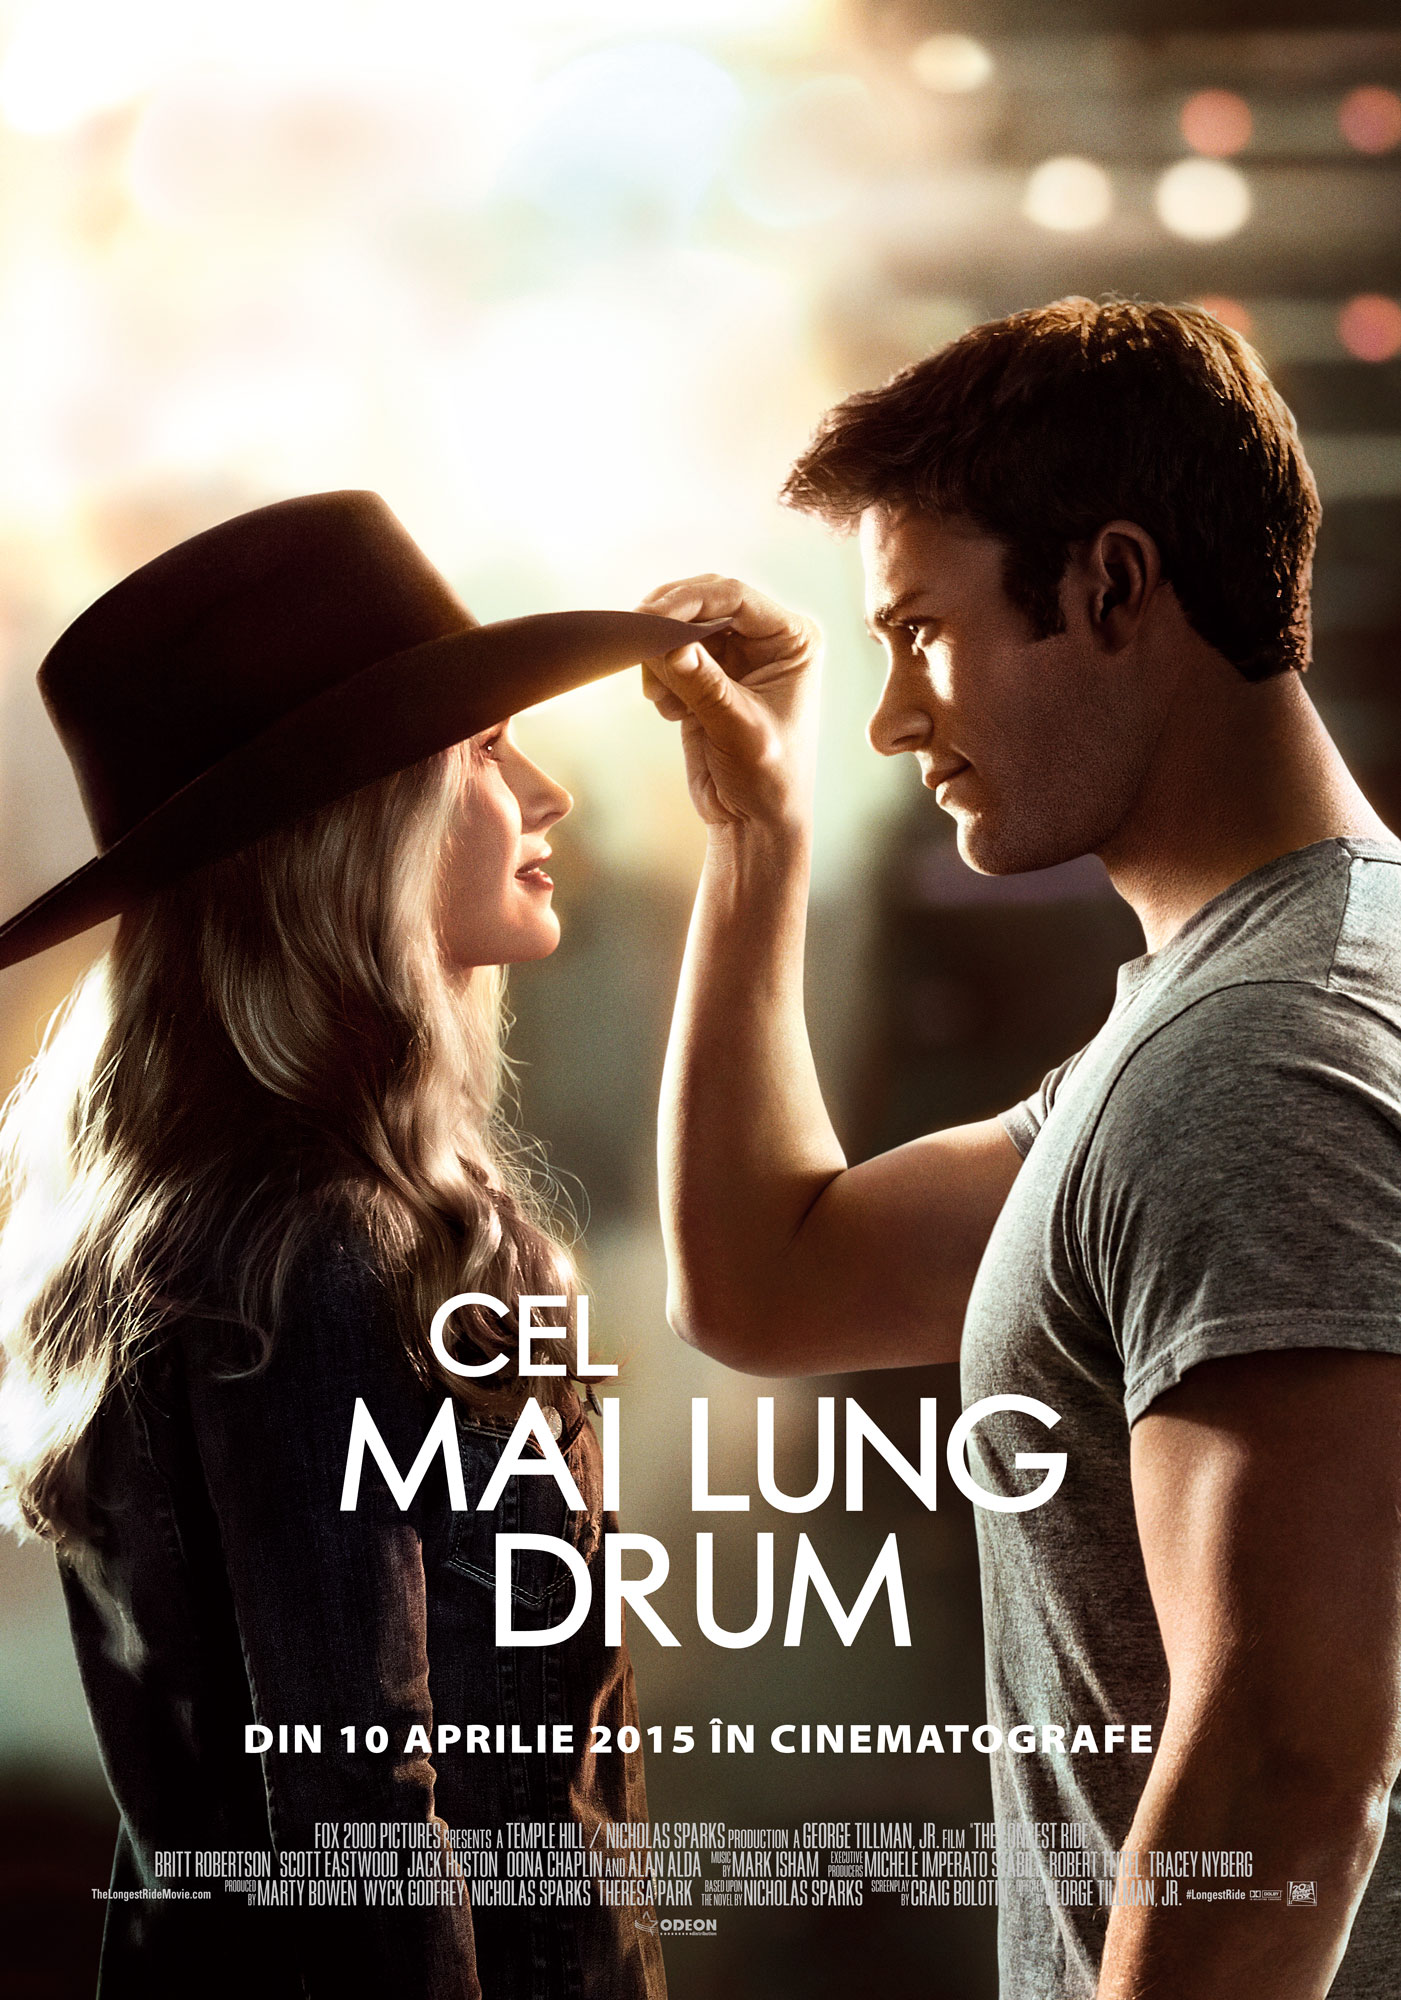 Cel mai lung drum / The Longest Ride (Premiera)